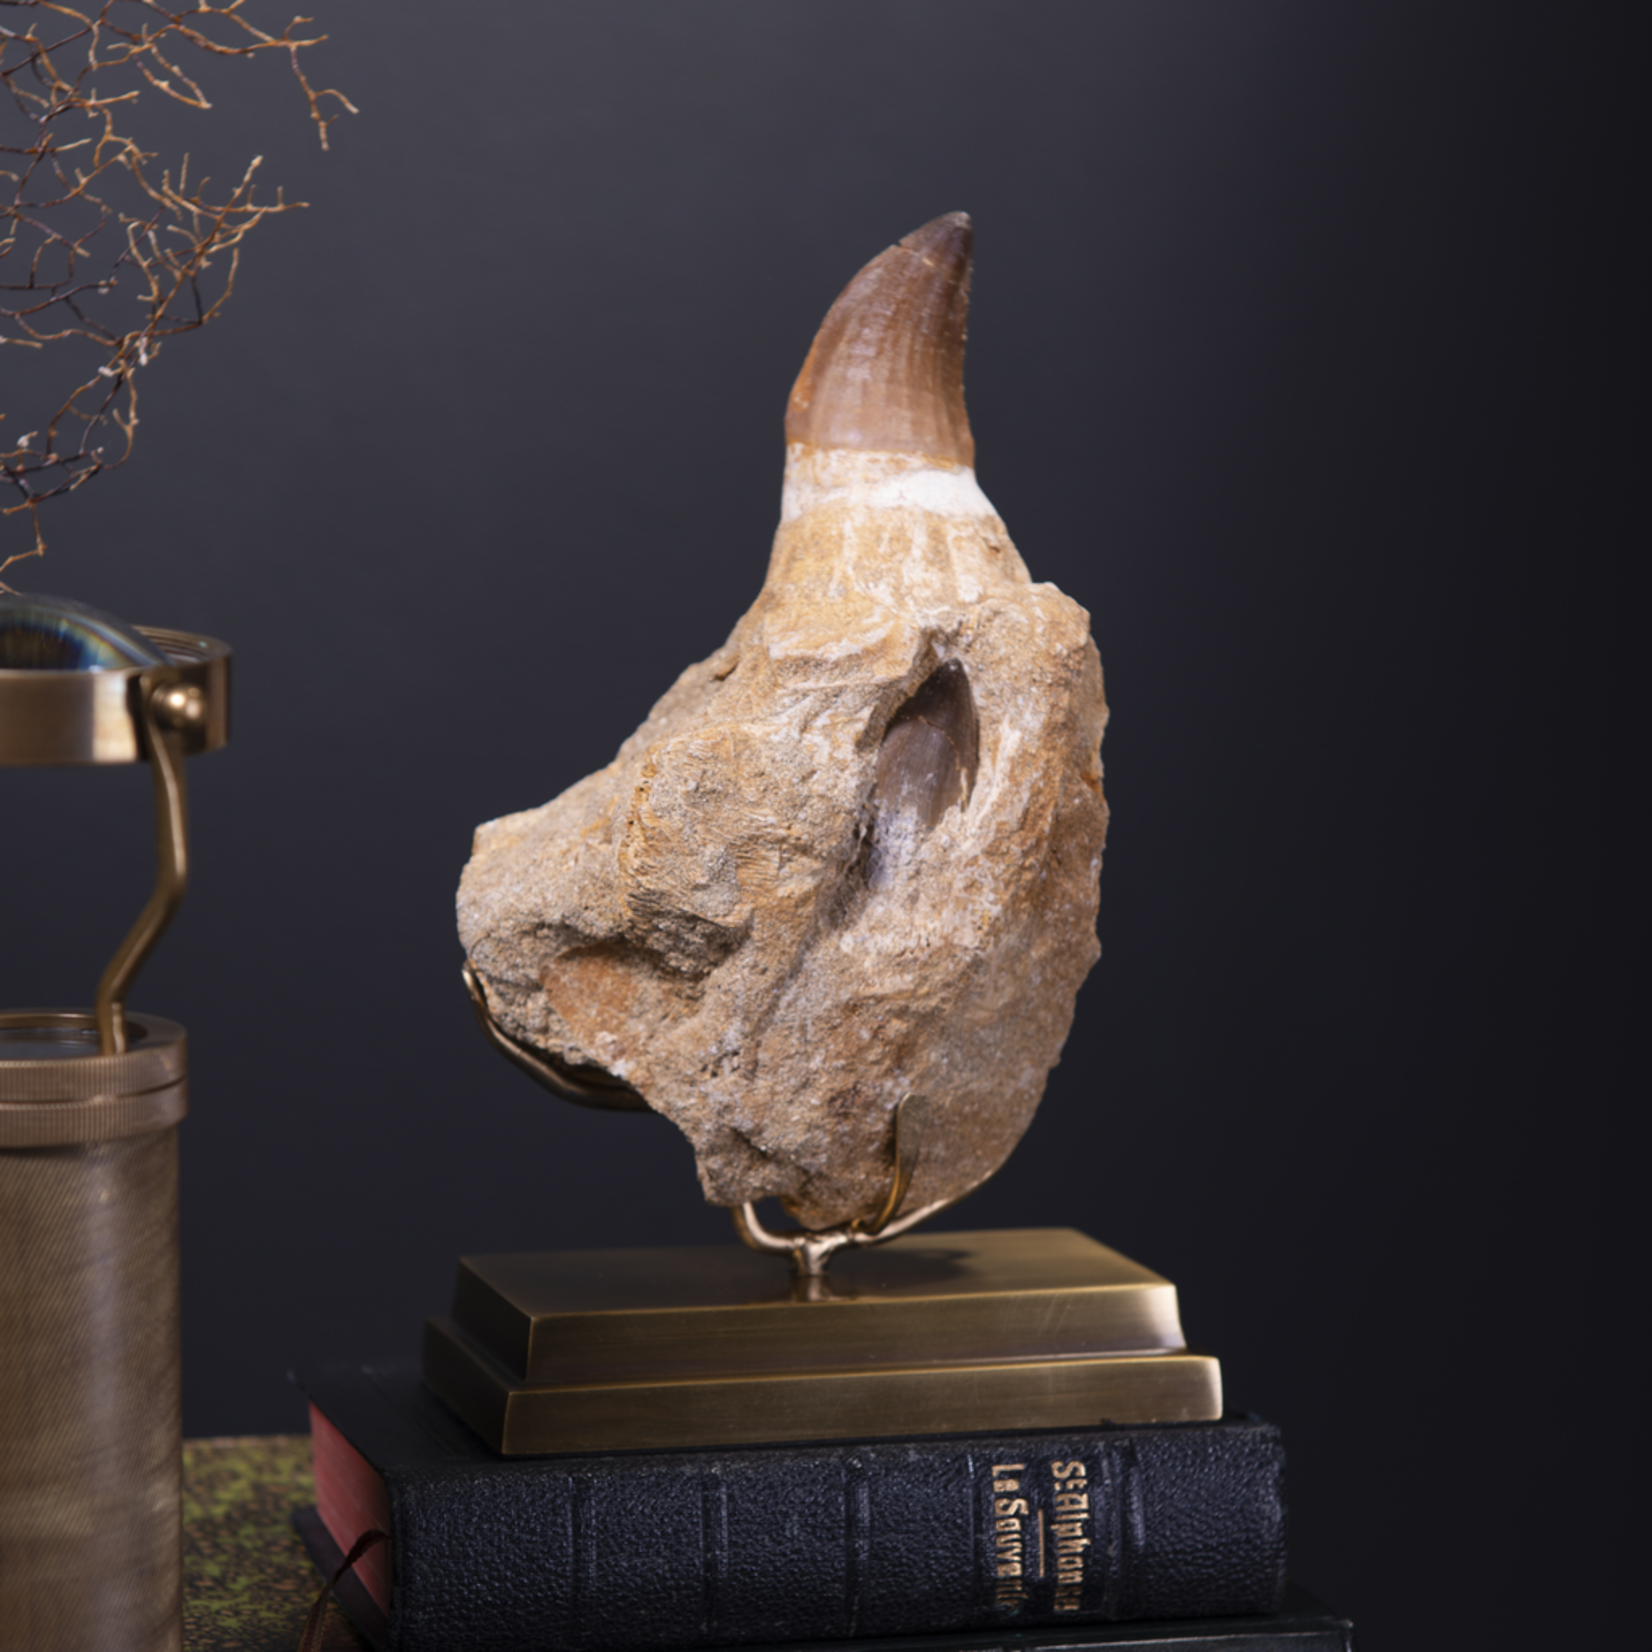 OBJET DE CURIOSITE MOSASAURUS TOOTH IN JAW ON BRASS BASE